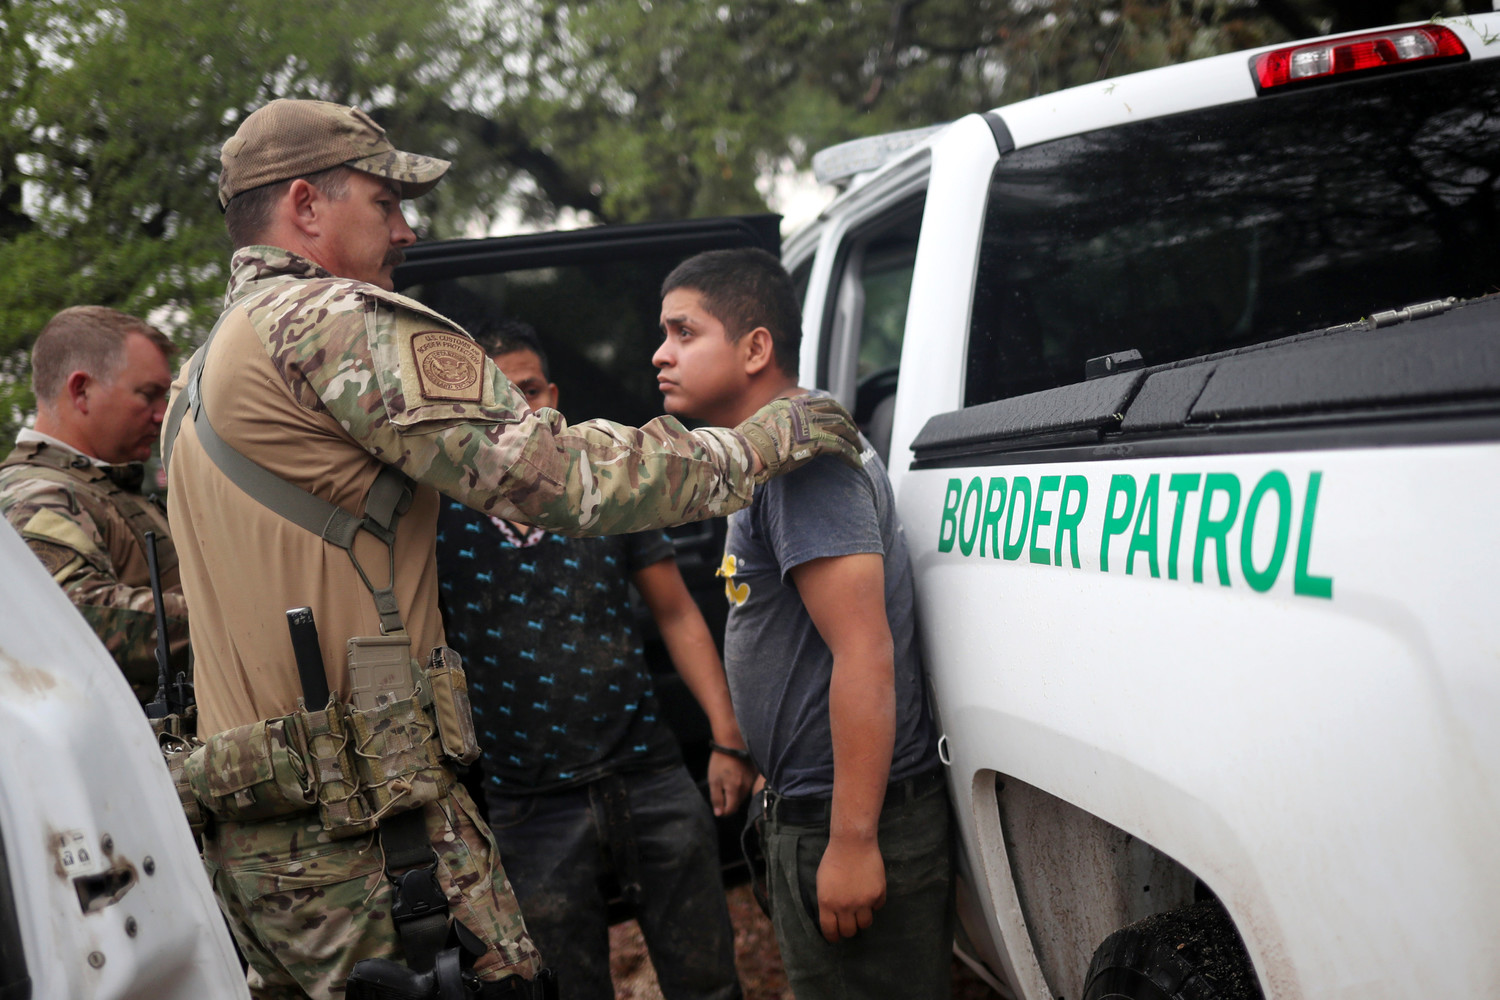 Members of the Border Patrol Search, Trauma, and Rescue Unit near Falfurrias, Texas, apprehend an immigrant from Guatemala June 19. Pope Francis told Reuters he stands with the U.S. bishops in their condemnation of the Trump administration's immigration policy has led to children being held in government shelters while their parents are detained in federal prison.